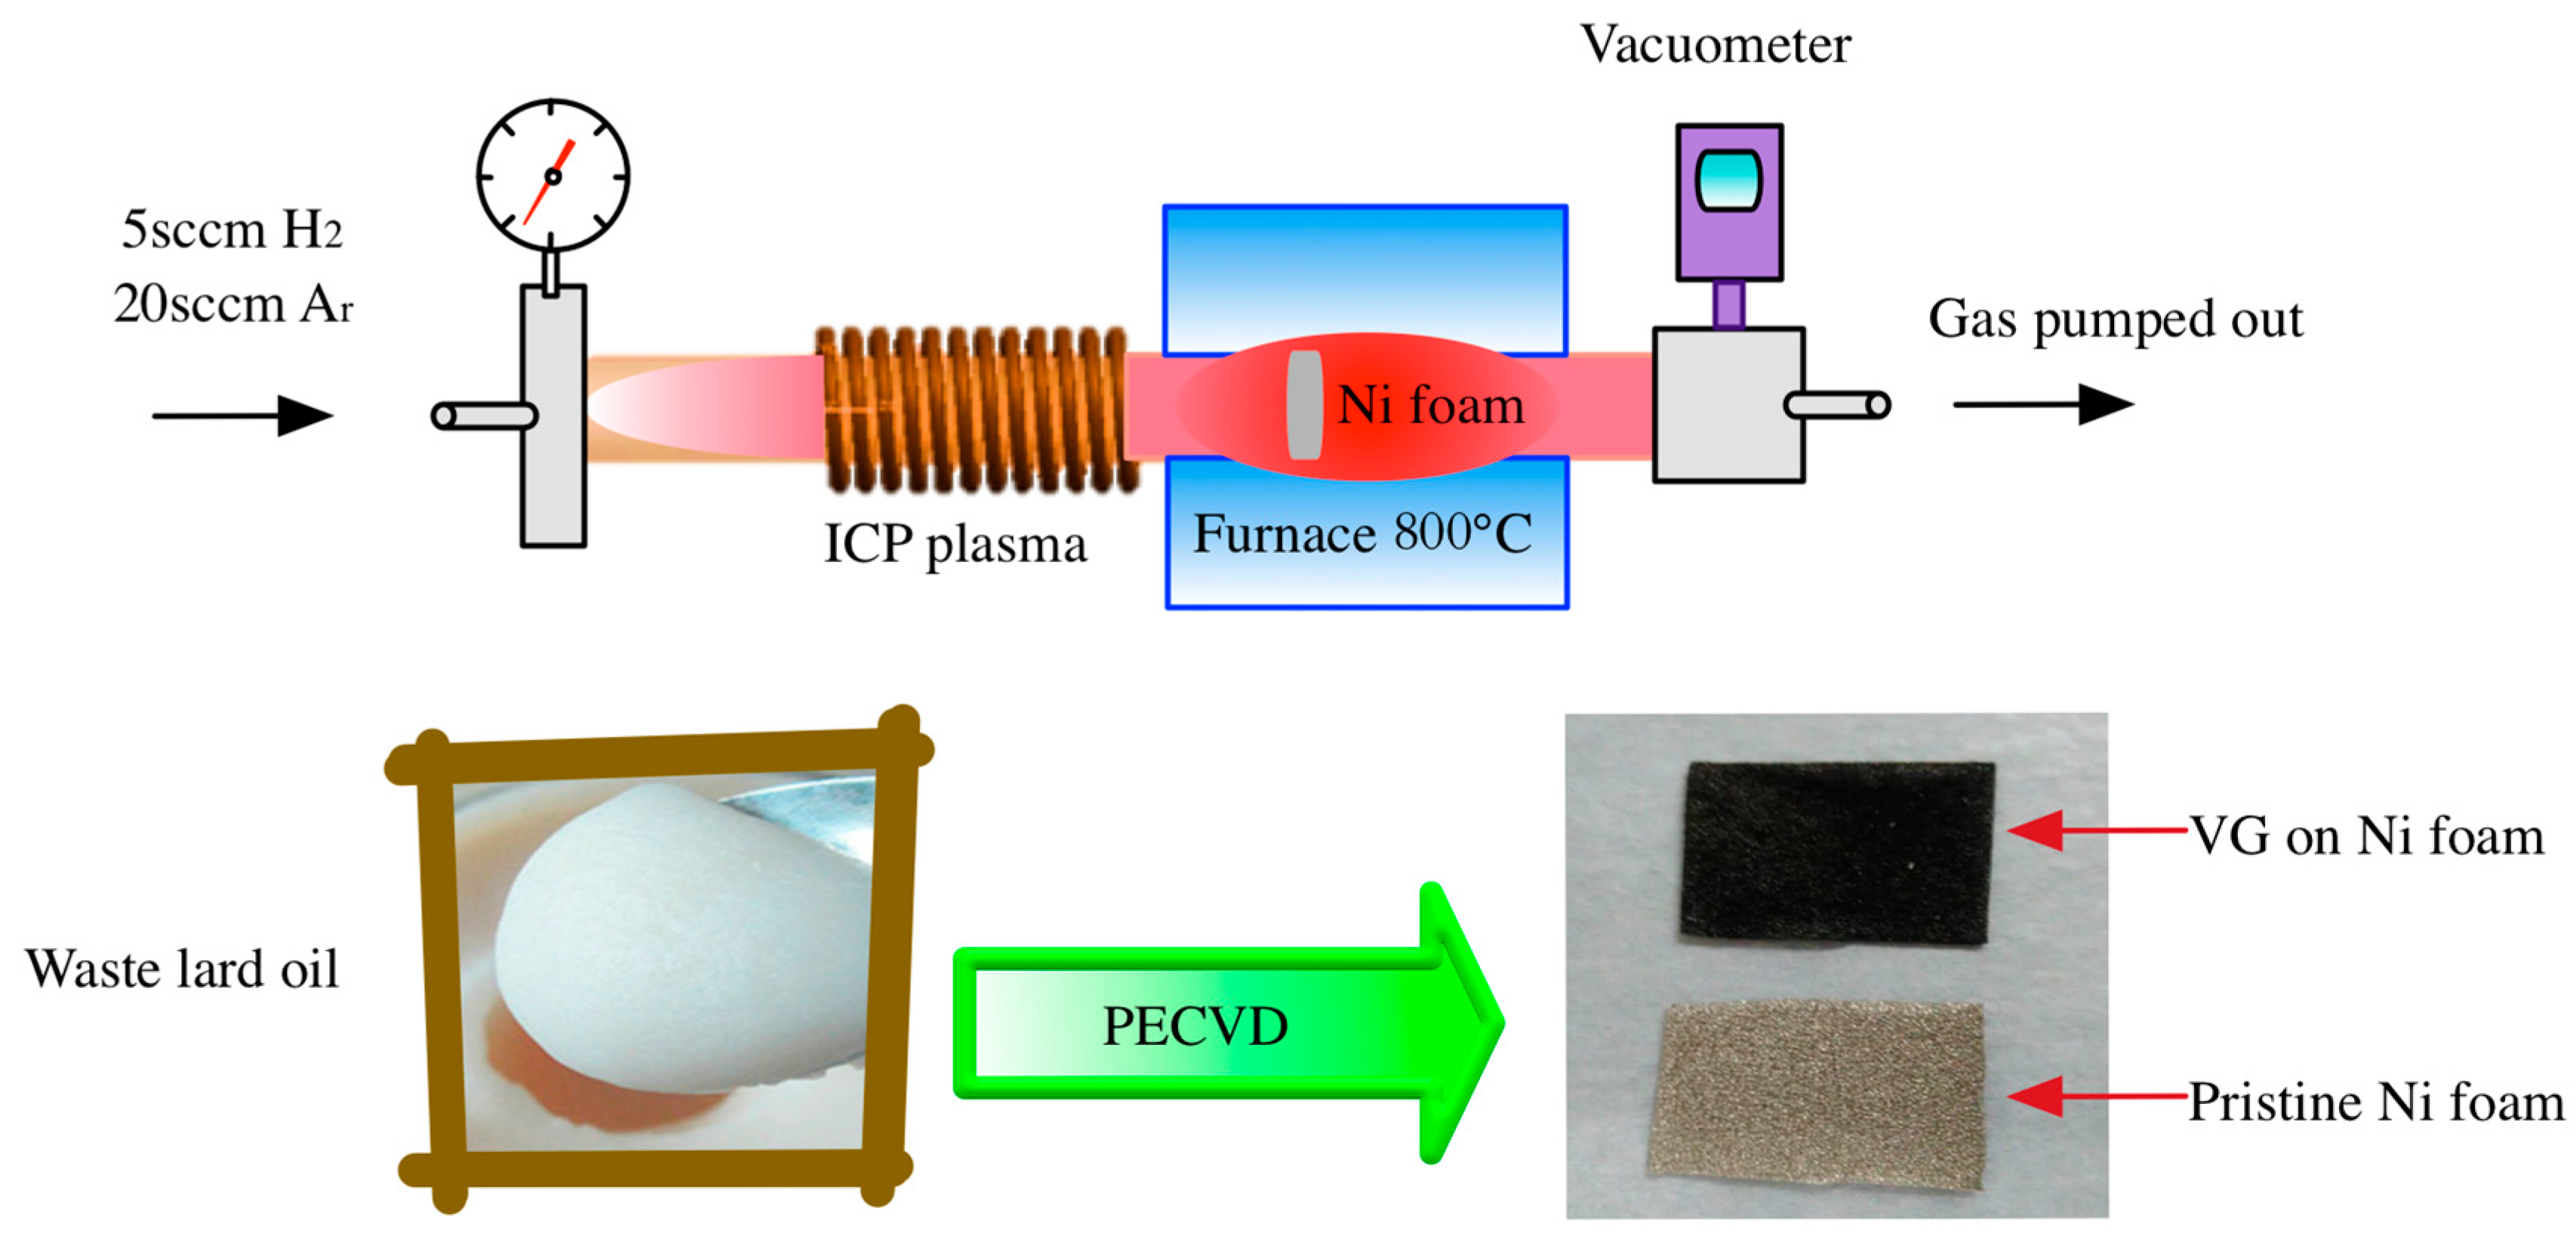 Nanomaterials | Free Full-Text | Upcycling Waste Lard Oil into ... on furnace motor, furnace components, furnace system, furnace fuse, furnace relay, furnace placement, furnace piping, furnace repair, furnace diagram, furnace drawing, furnace troubleshooting, furnace installation, furnace parts, furnace capacitor,